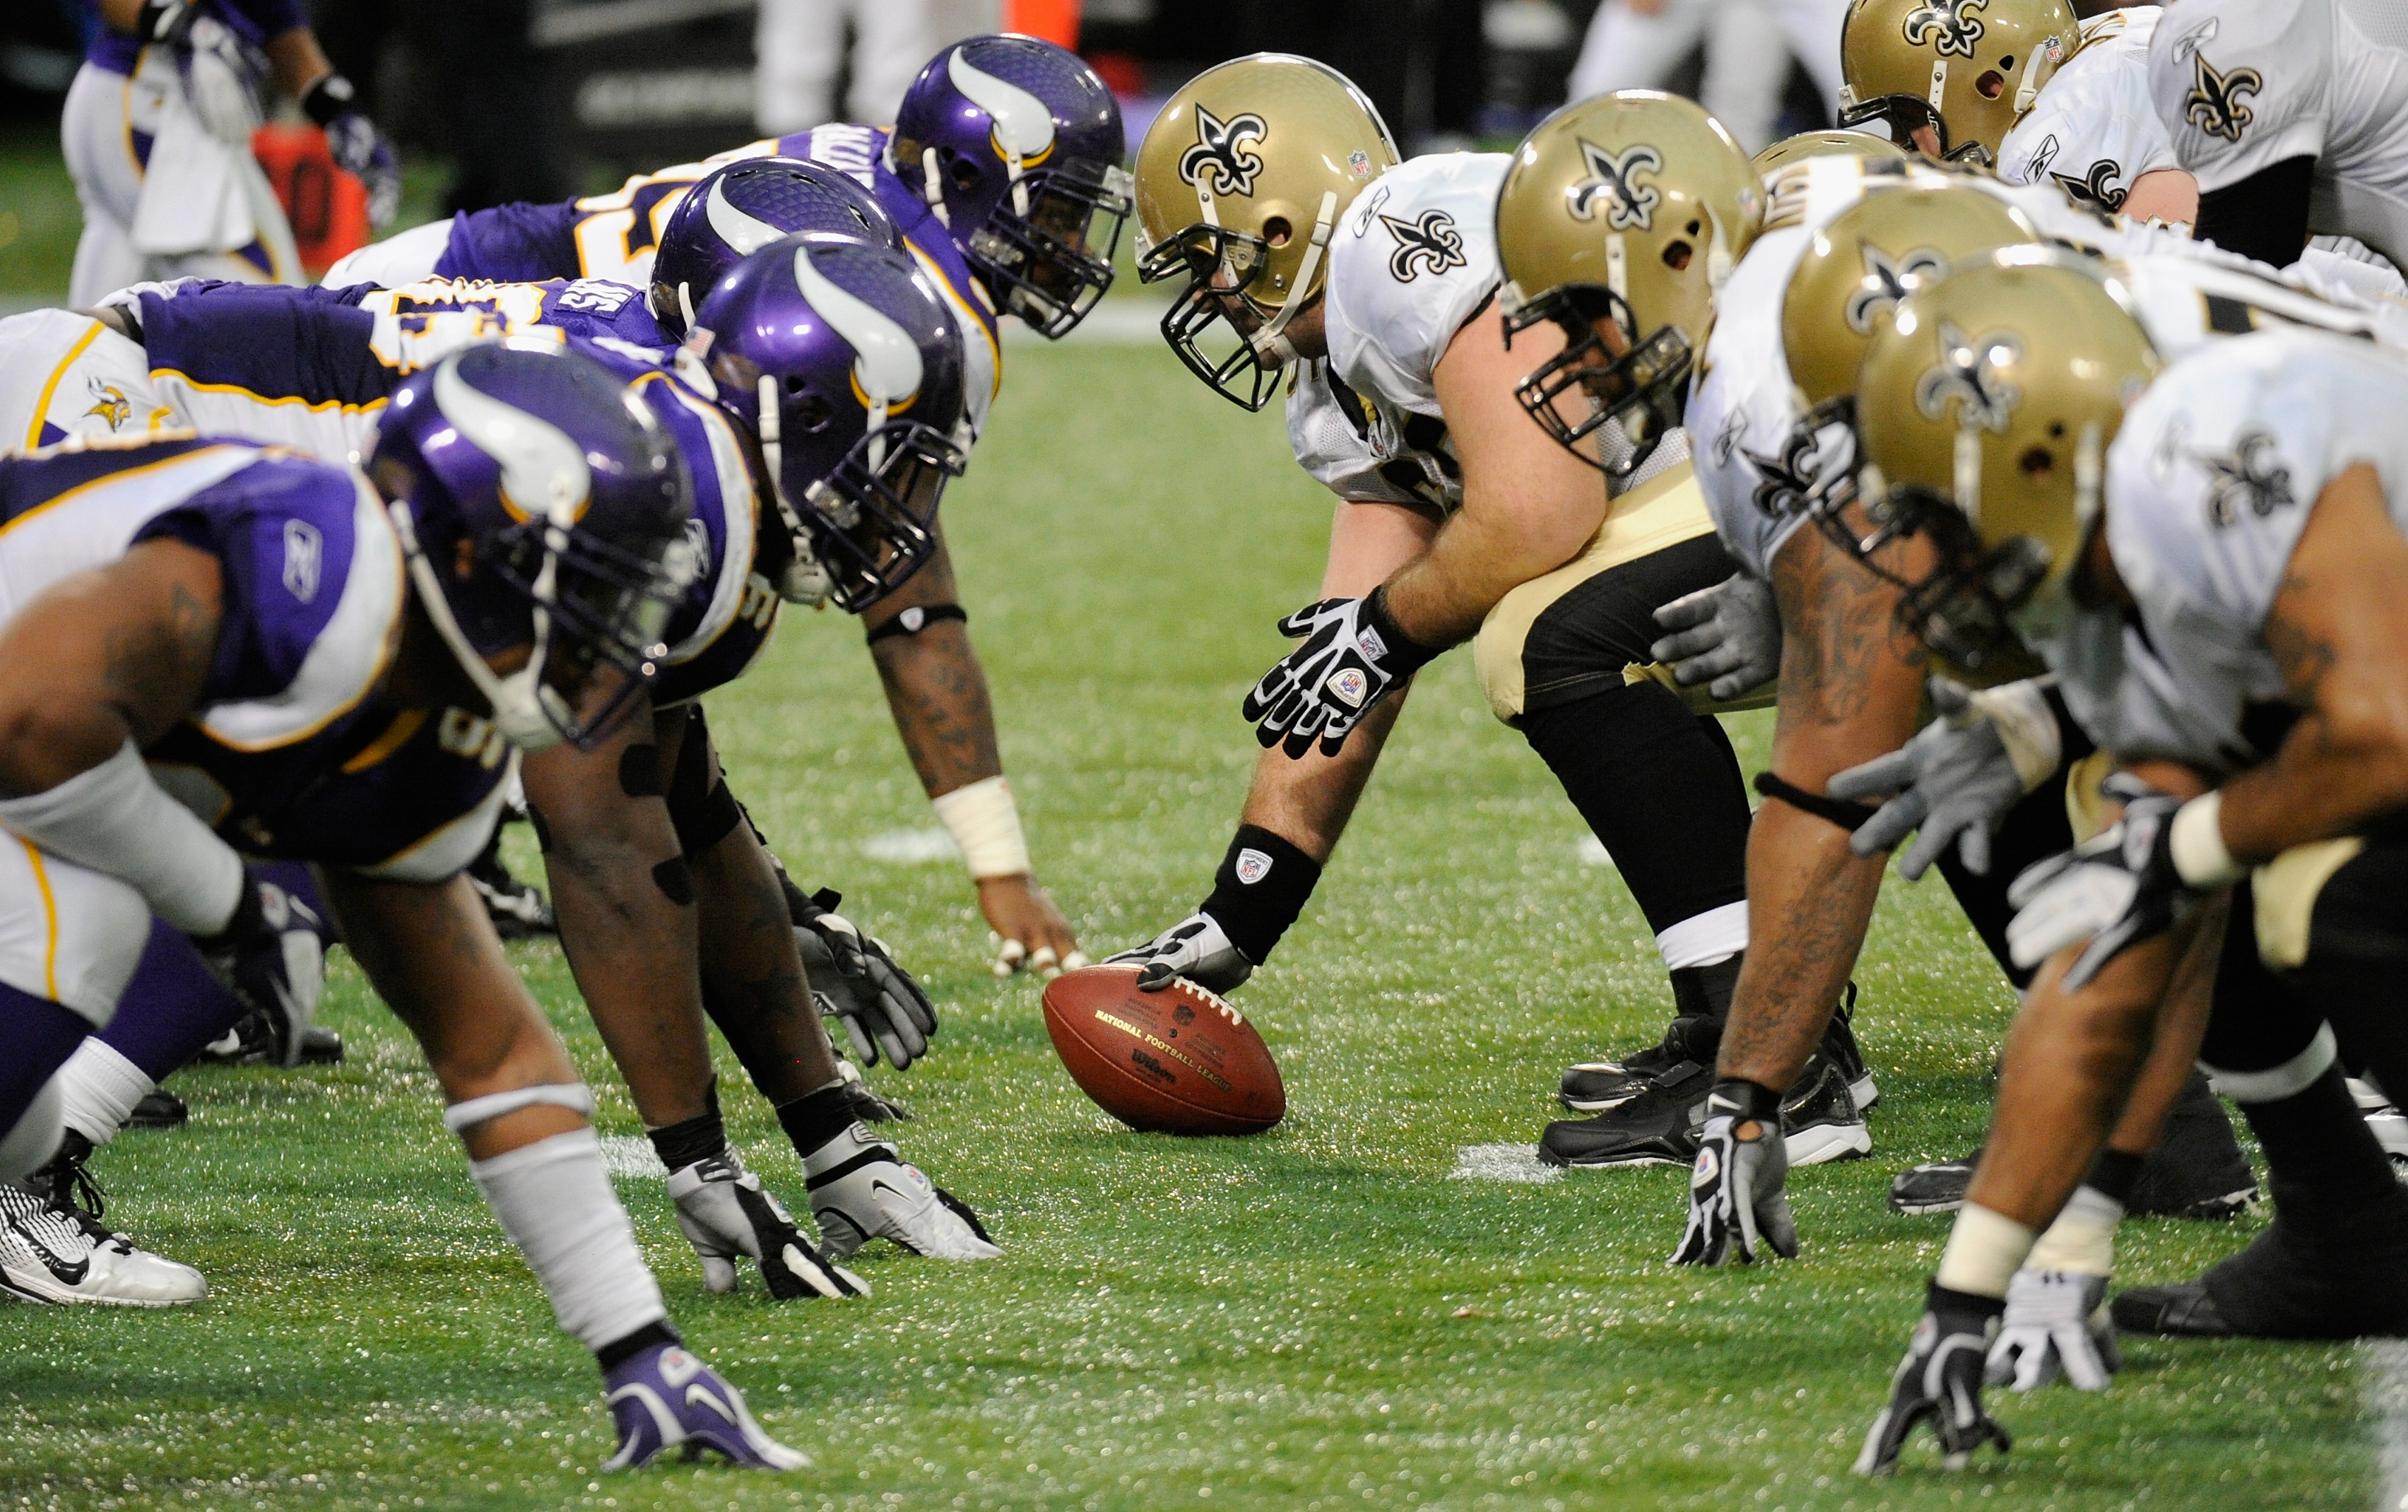 136133627-new-orleans-saints-v-minnesota-vikings.jpg